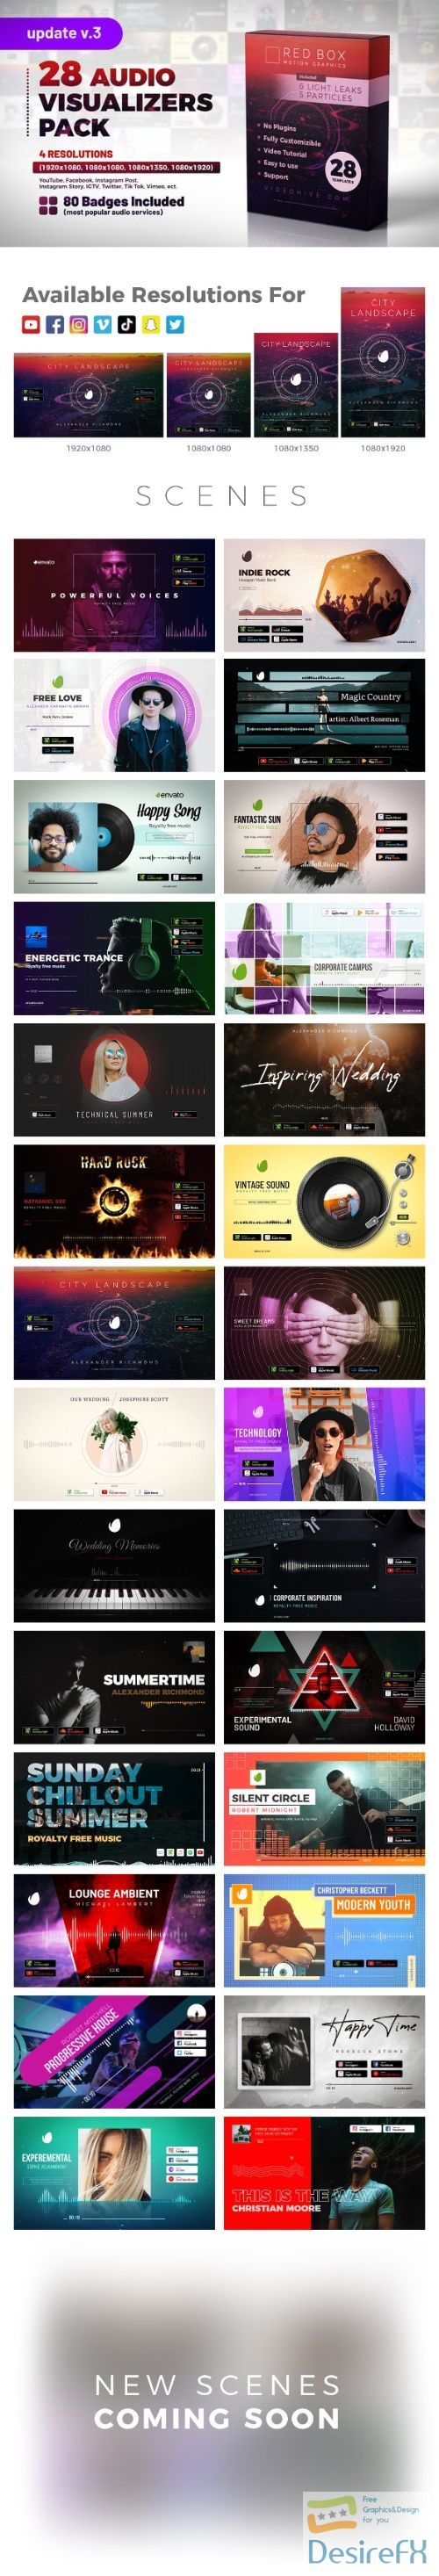 Videohive Audio Visualizers Pack V2 27144986